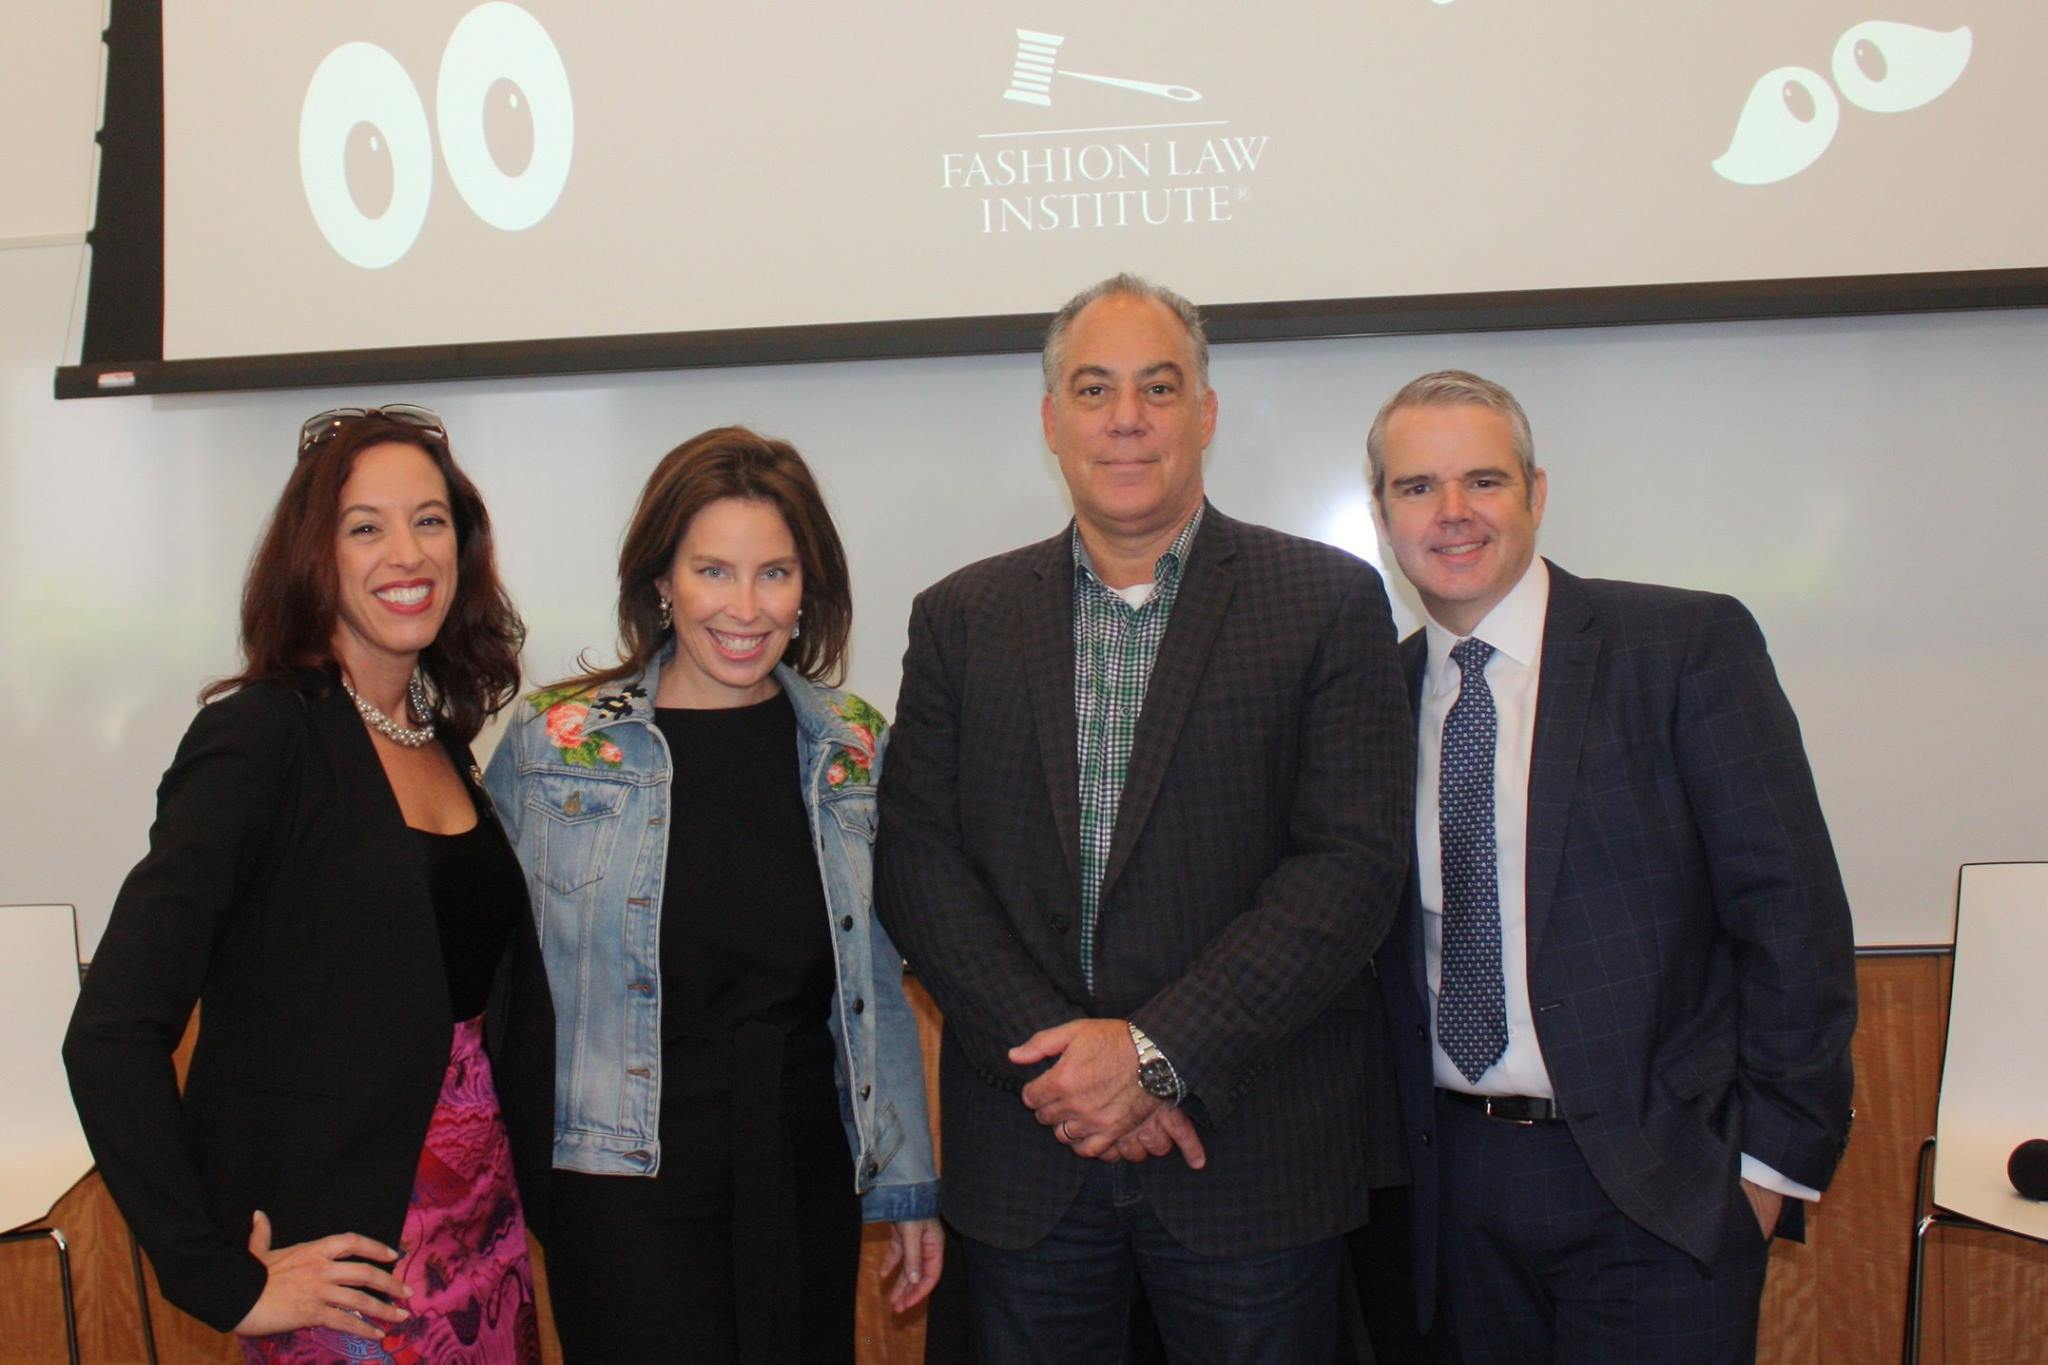 Professor Susan Scafidi, Nicole Marra (Vice President, General Counsel, Corporate Affairs), James Donoian (Partner, McCarter & English) , and John Maltbie (Director of Intellectual Property, Civil Enforcement Louis Vuitton Americas)